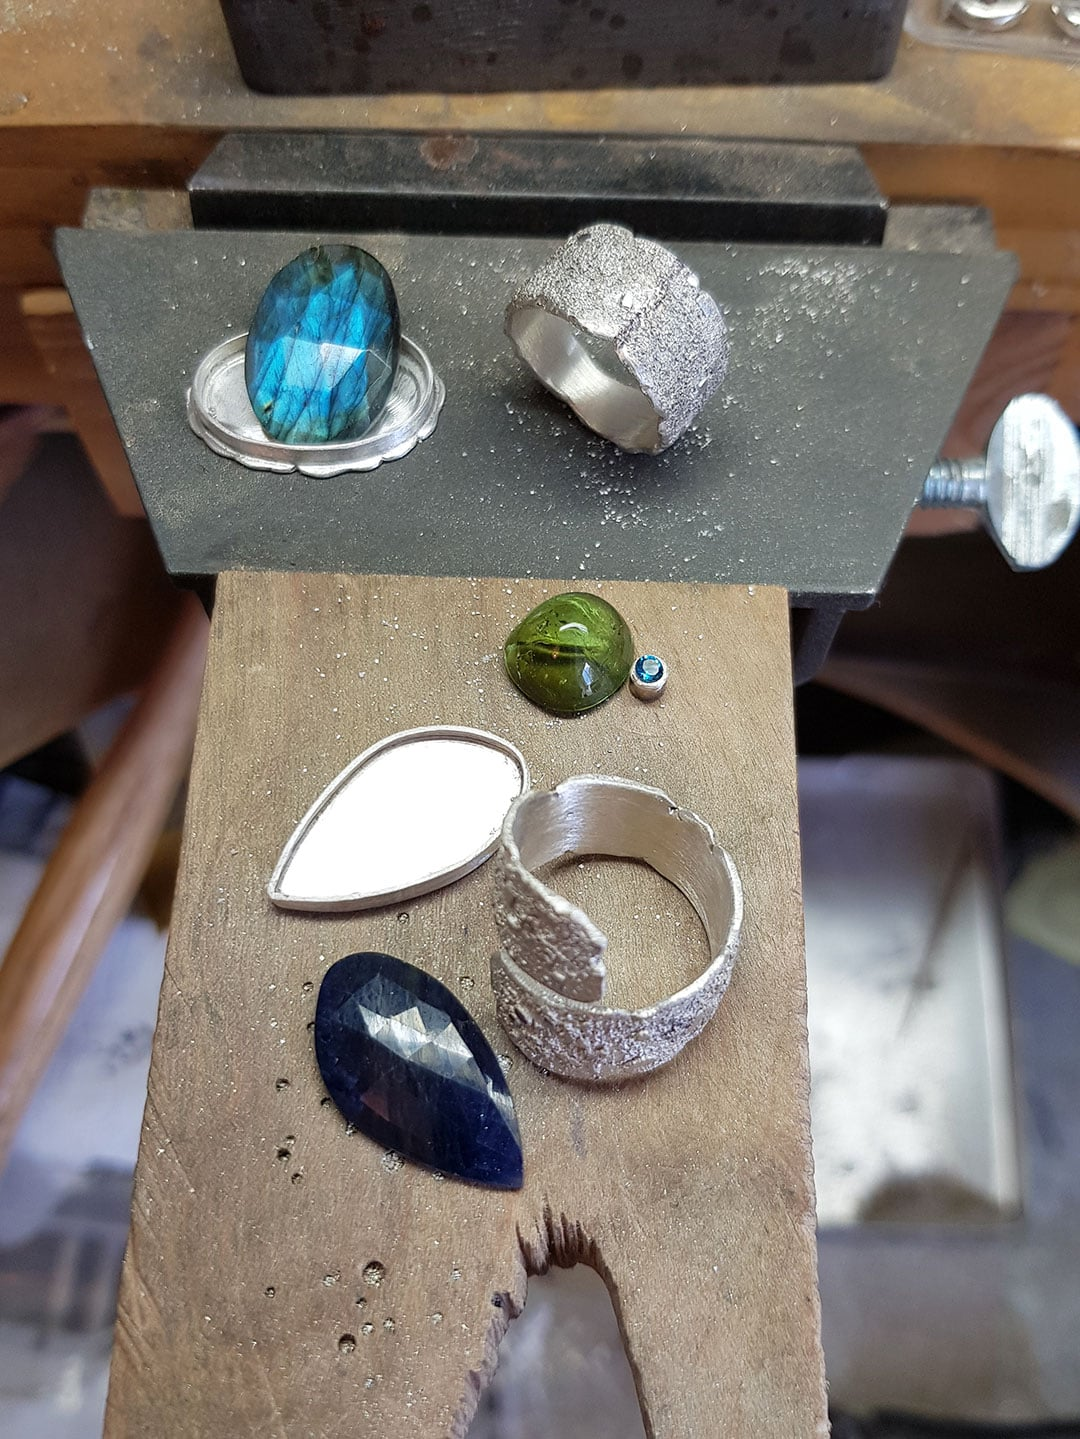 One of a kind gemstone and textured silver rings in progress